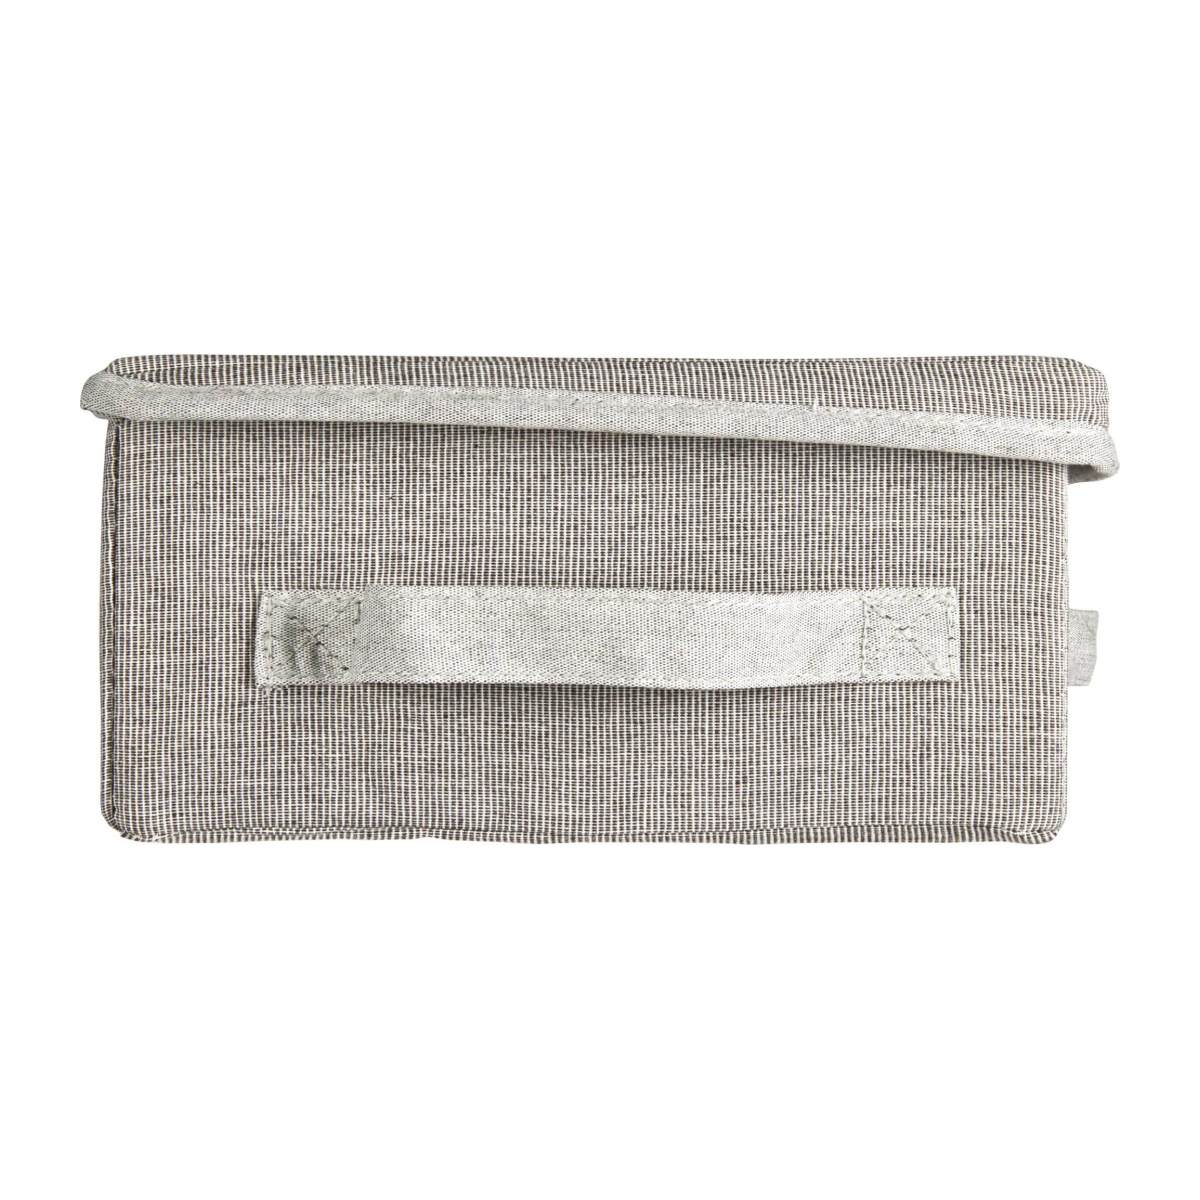 Small Storage basket, grey fabric and bamboo n°5